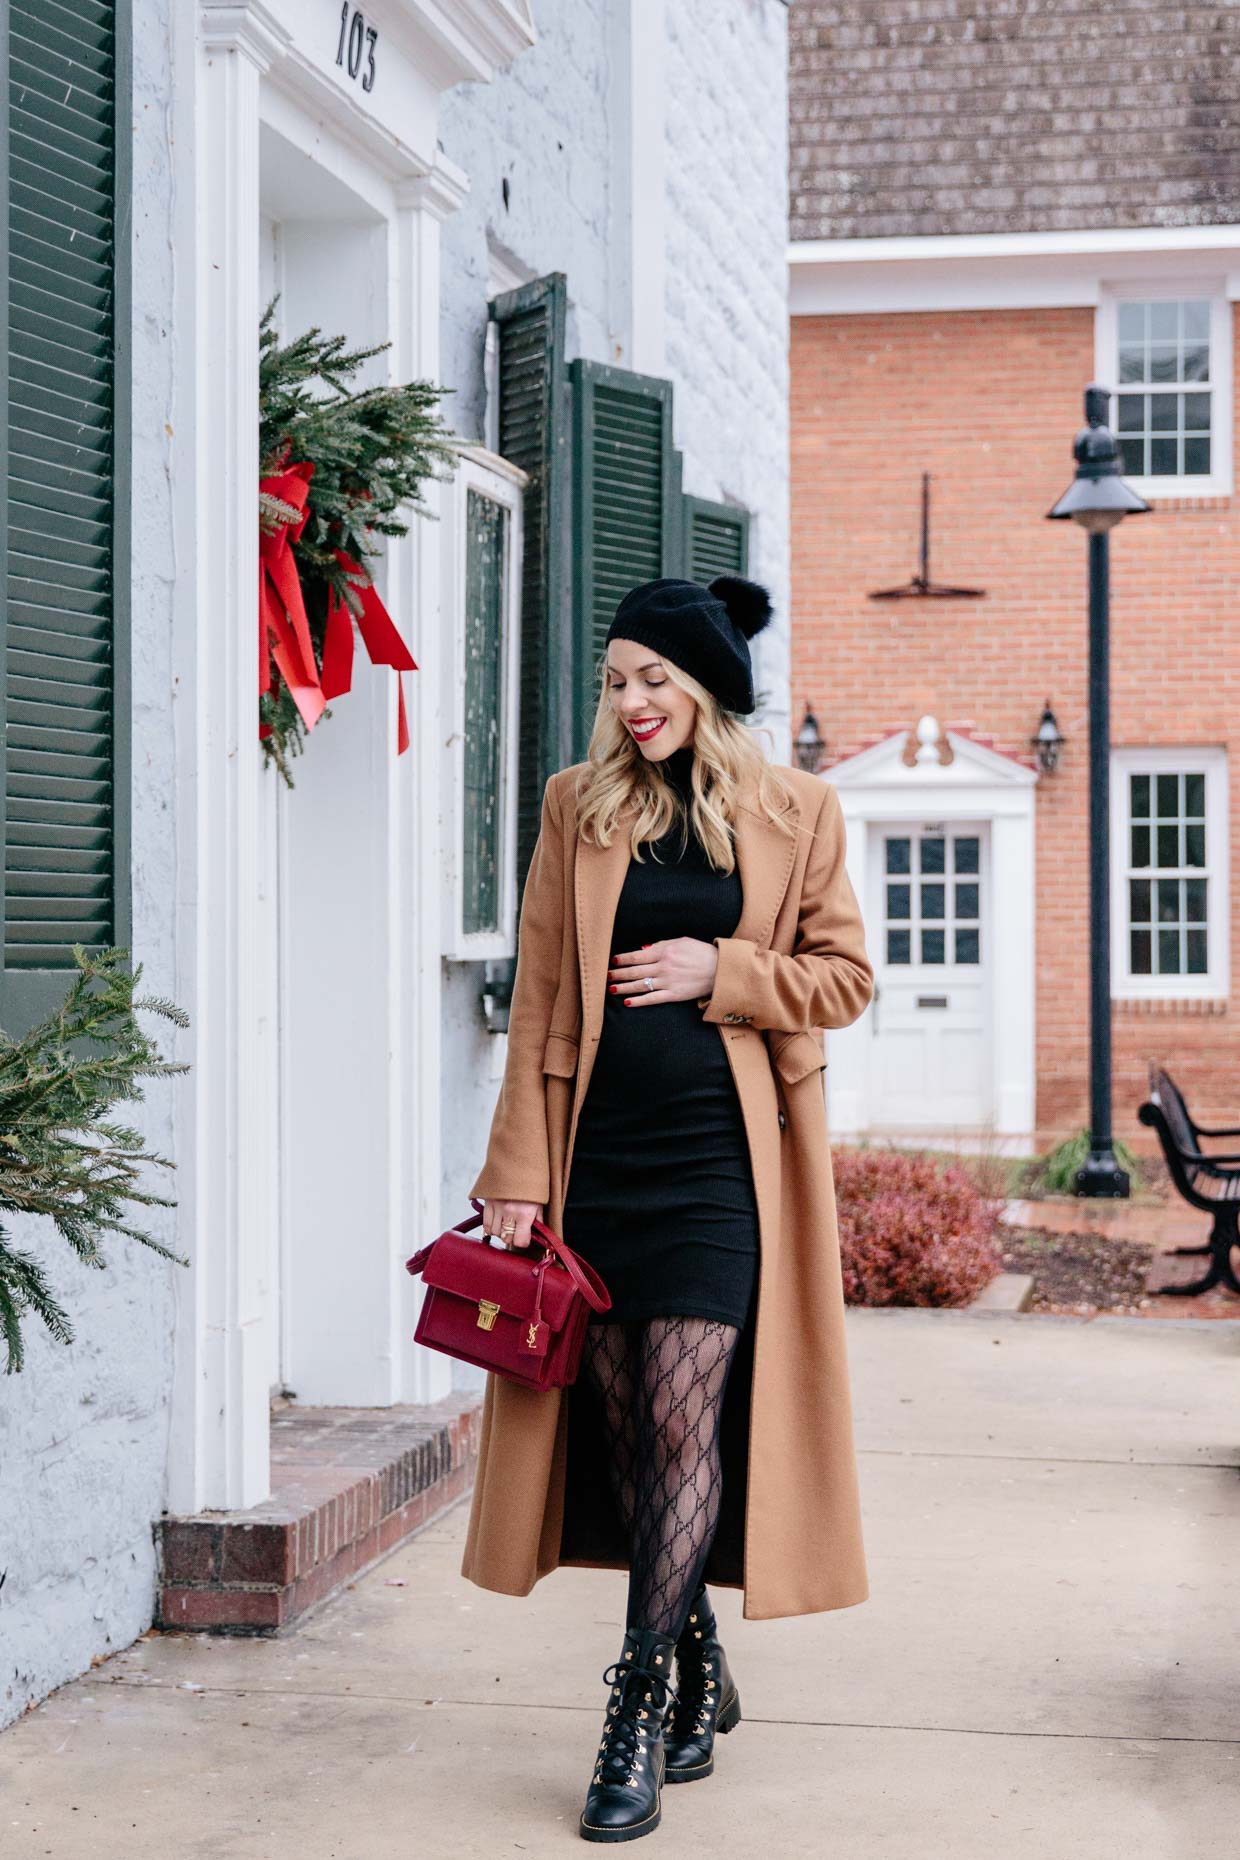 Meagan Brandon fashion blogger of Meagan's Moda wears double breasted camel coat over fitted black turtleneck dress with Gucci tights and combat boots